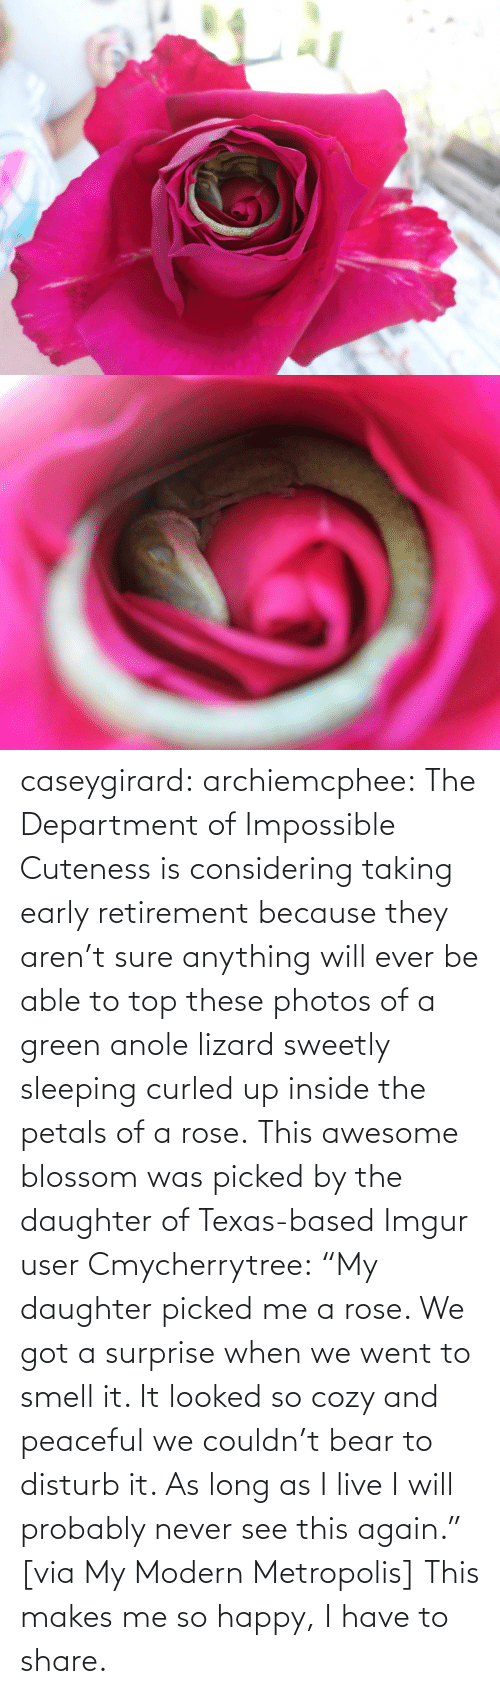 "I Will: caseygirard:  archiemcphee:   The Department of Impossible Cuteness is considering taking early retirement because they aren't sure anything will ever be able to top these photos of a green anole lizard sweetly sleeping curled up inside the petals of a rose. This awesome blossom was picked by the daughter of Texas-based Imgur user Cmycherrytree: ""My daughter picked me a rose. We got a surprise when we went to smell it. It looked so cozy and peaceful we couldn't bear to disturb it. As long as I live I will probably never see this again."" [via My Modern Metropolis]   This makes me so happy, I have to share."